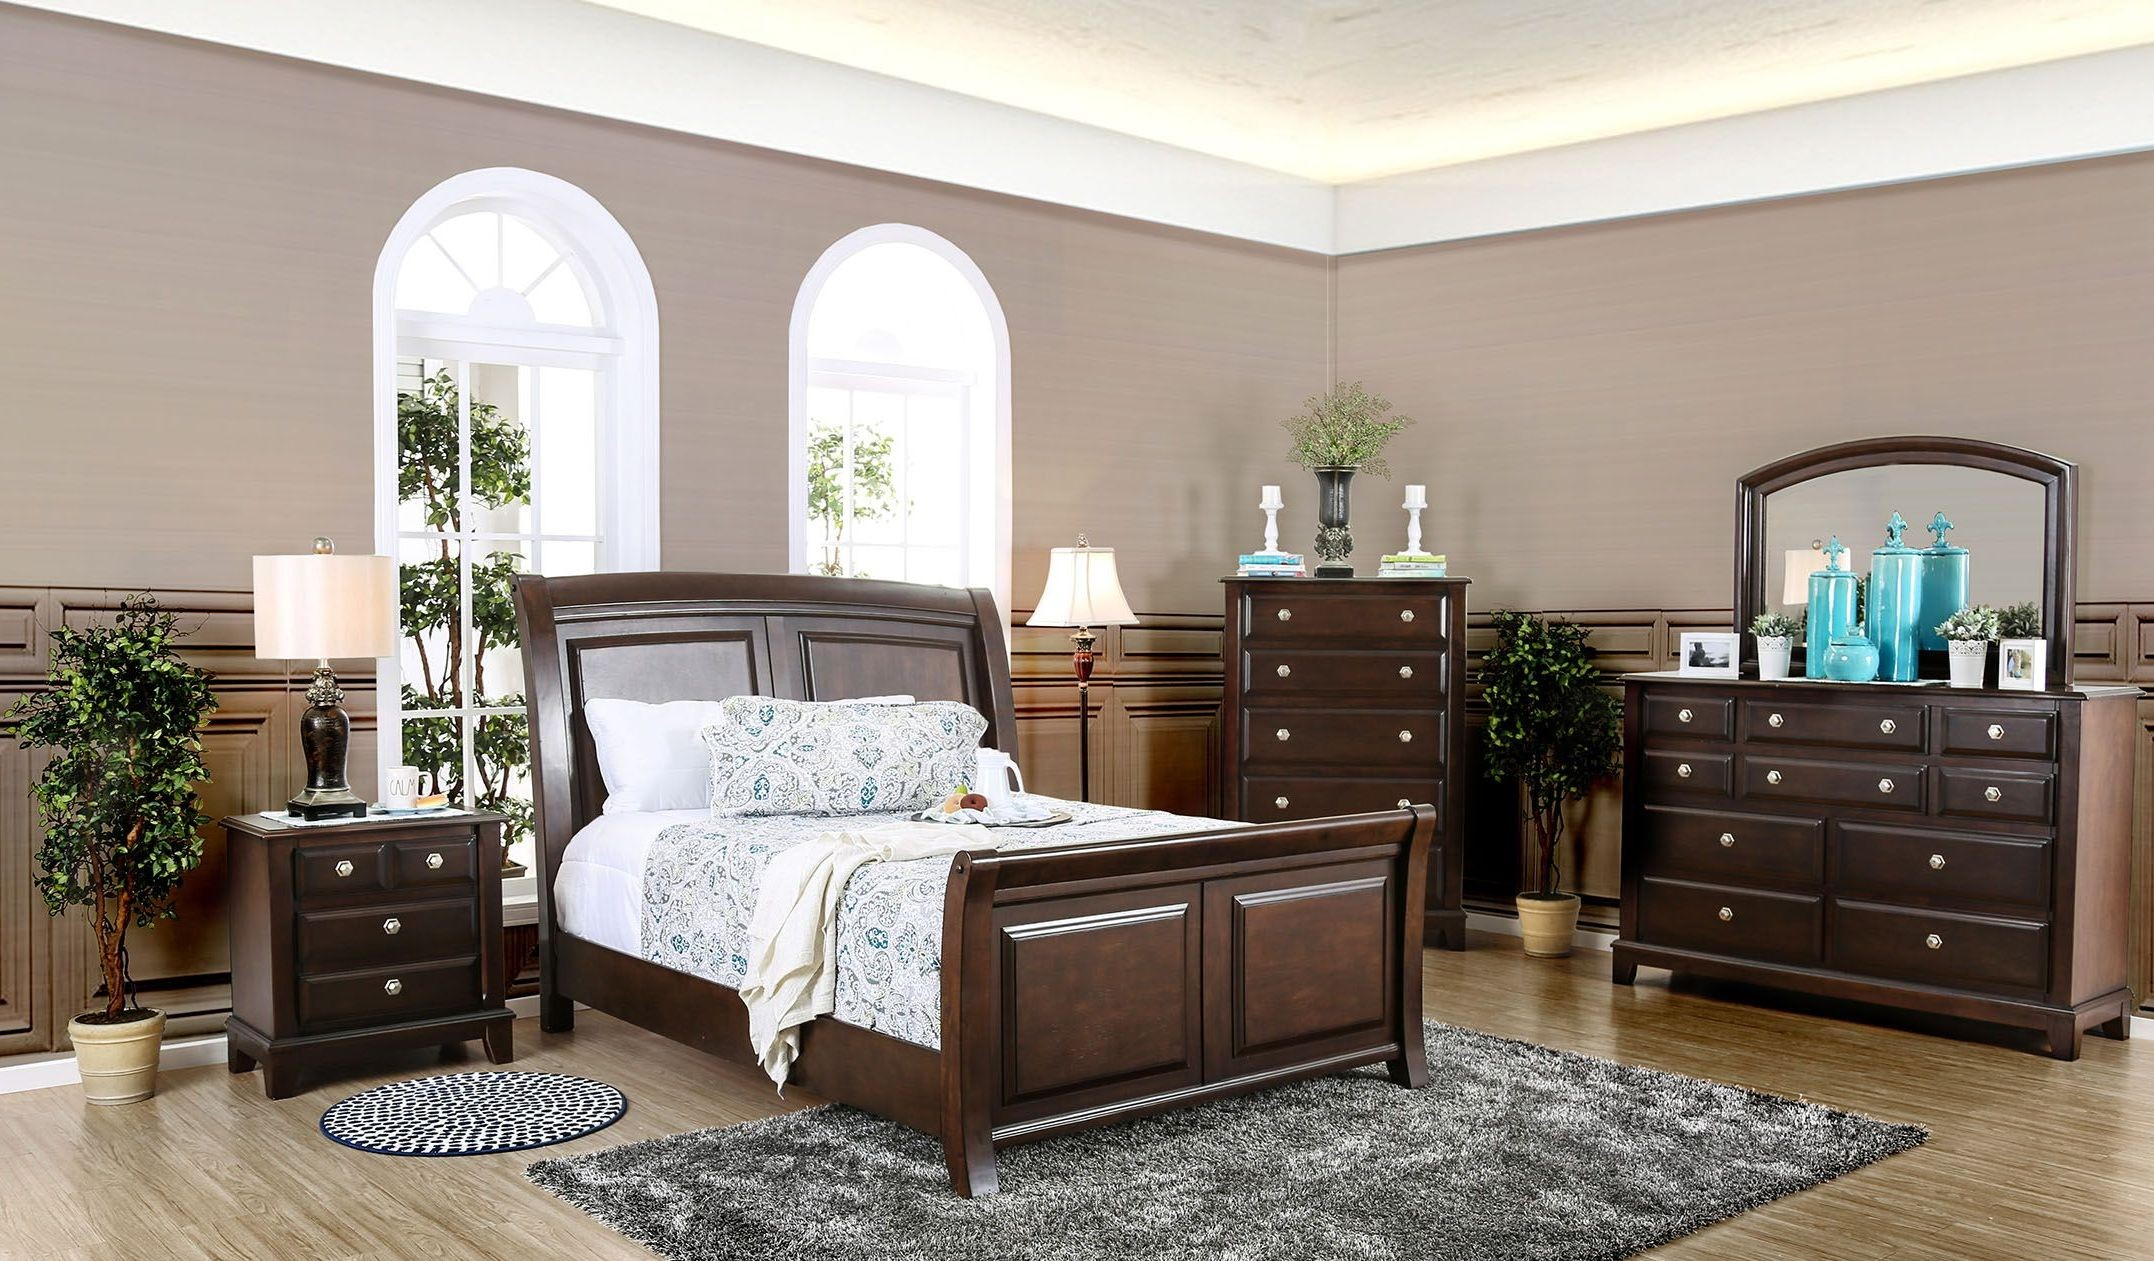 Contemporary Master Bedroom Furniture New Queen Size Sleigh Bed     Contemporary Master Bedroom Furniture New Queen Size Sleigh Bed Dresser  Mirror Nightstand 4pc Set Brown Cherry